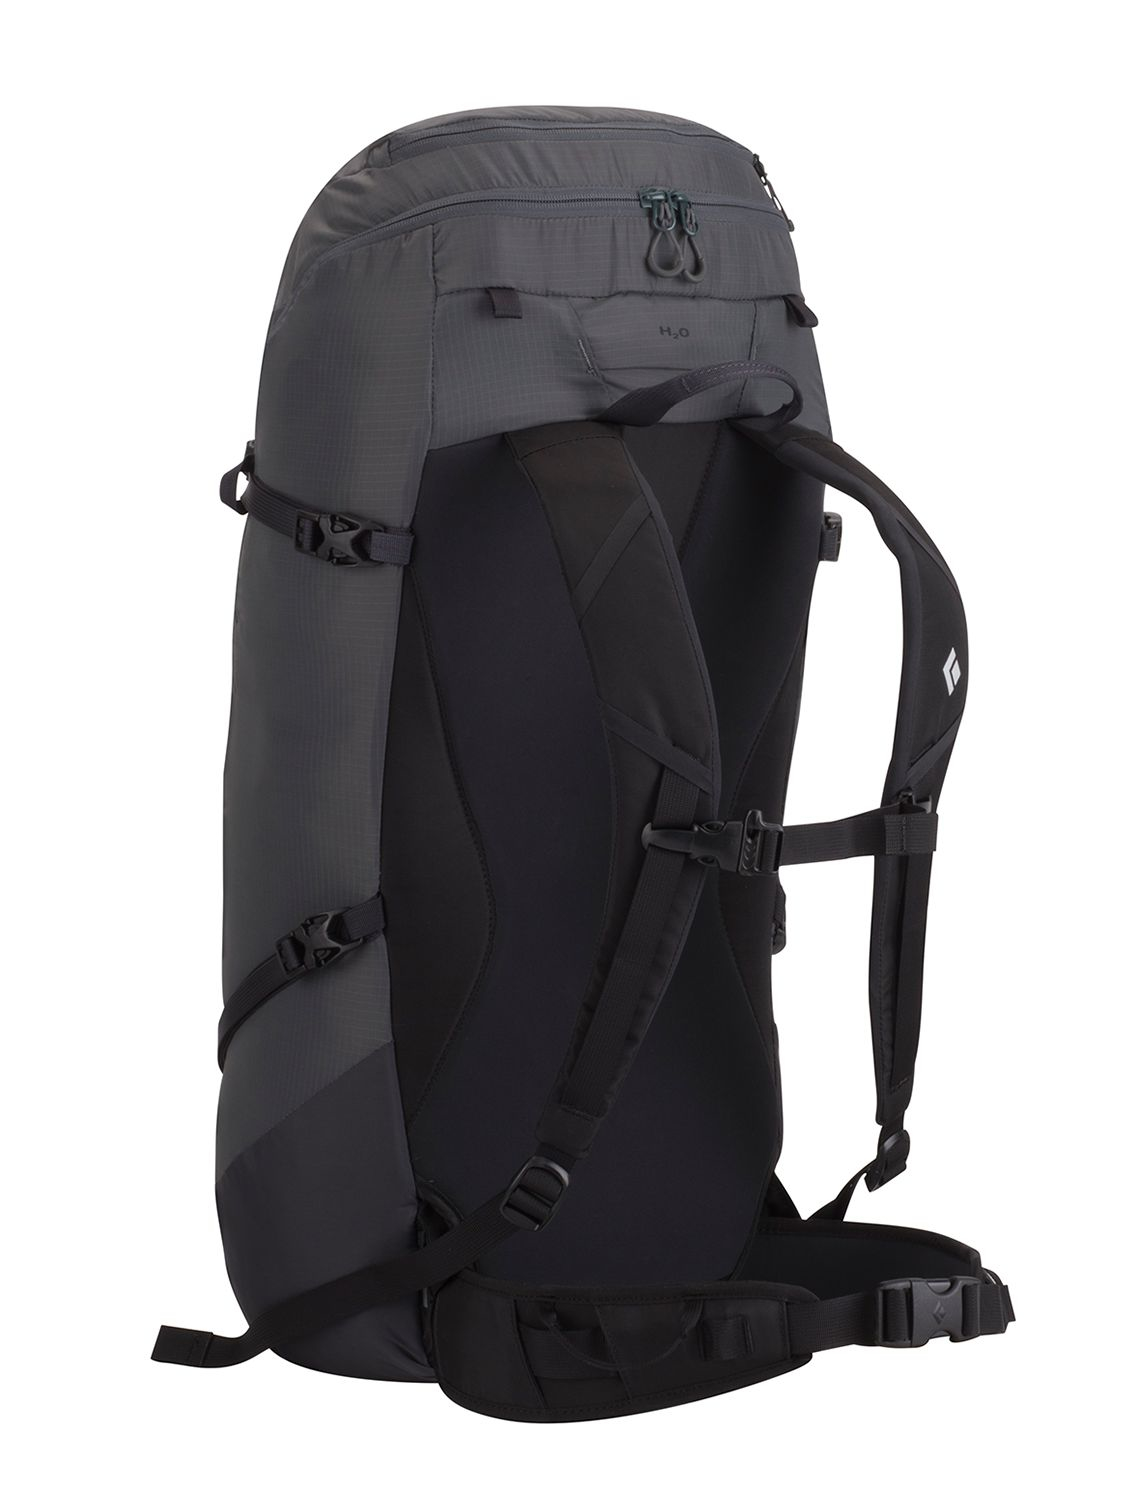 Black Diamond 33l Speed Zip Outdoor Backpack in Graphite (Grey) for Men